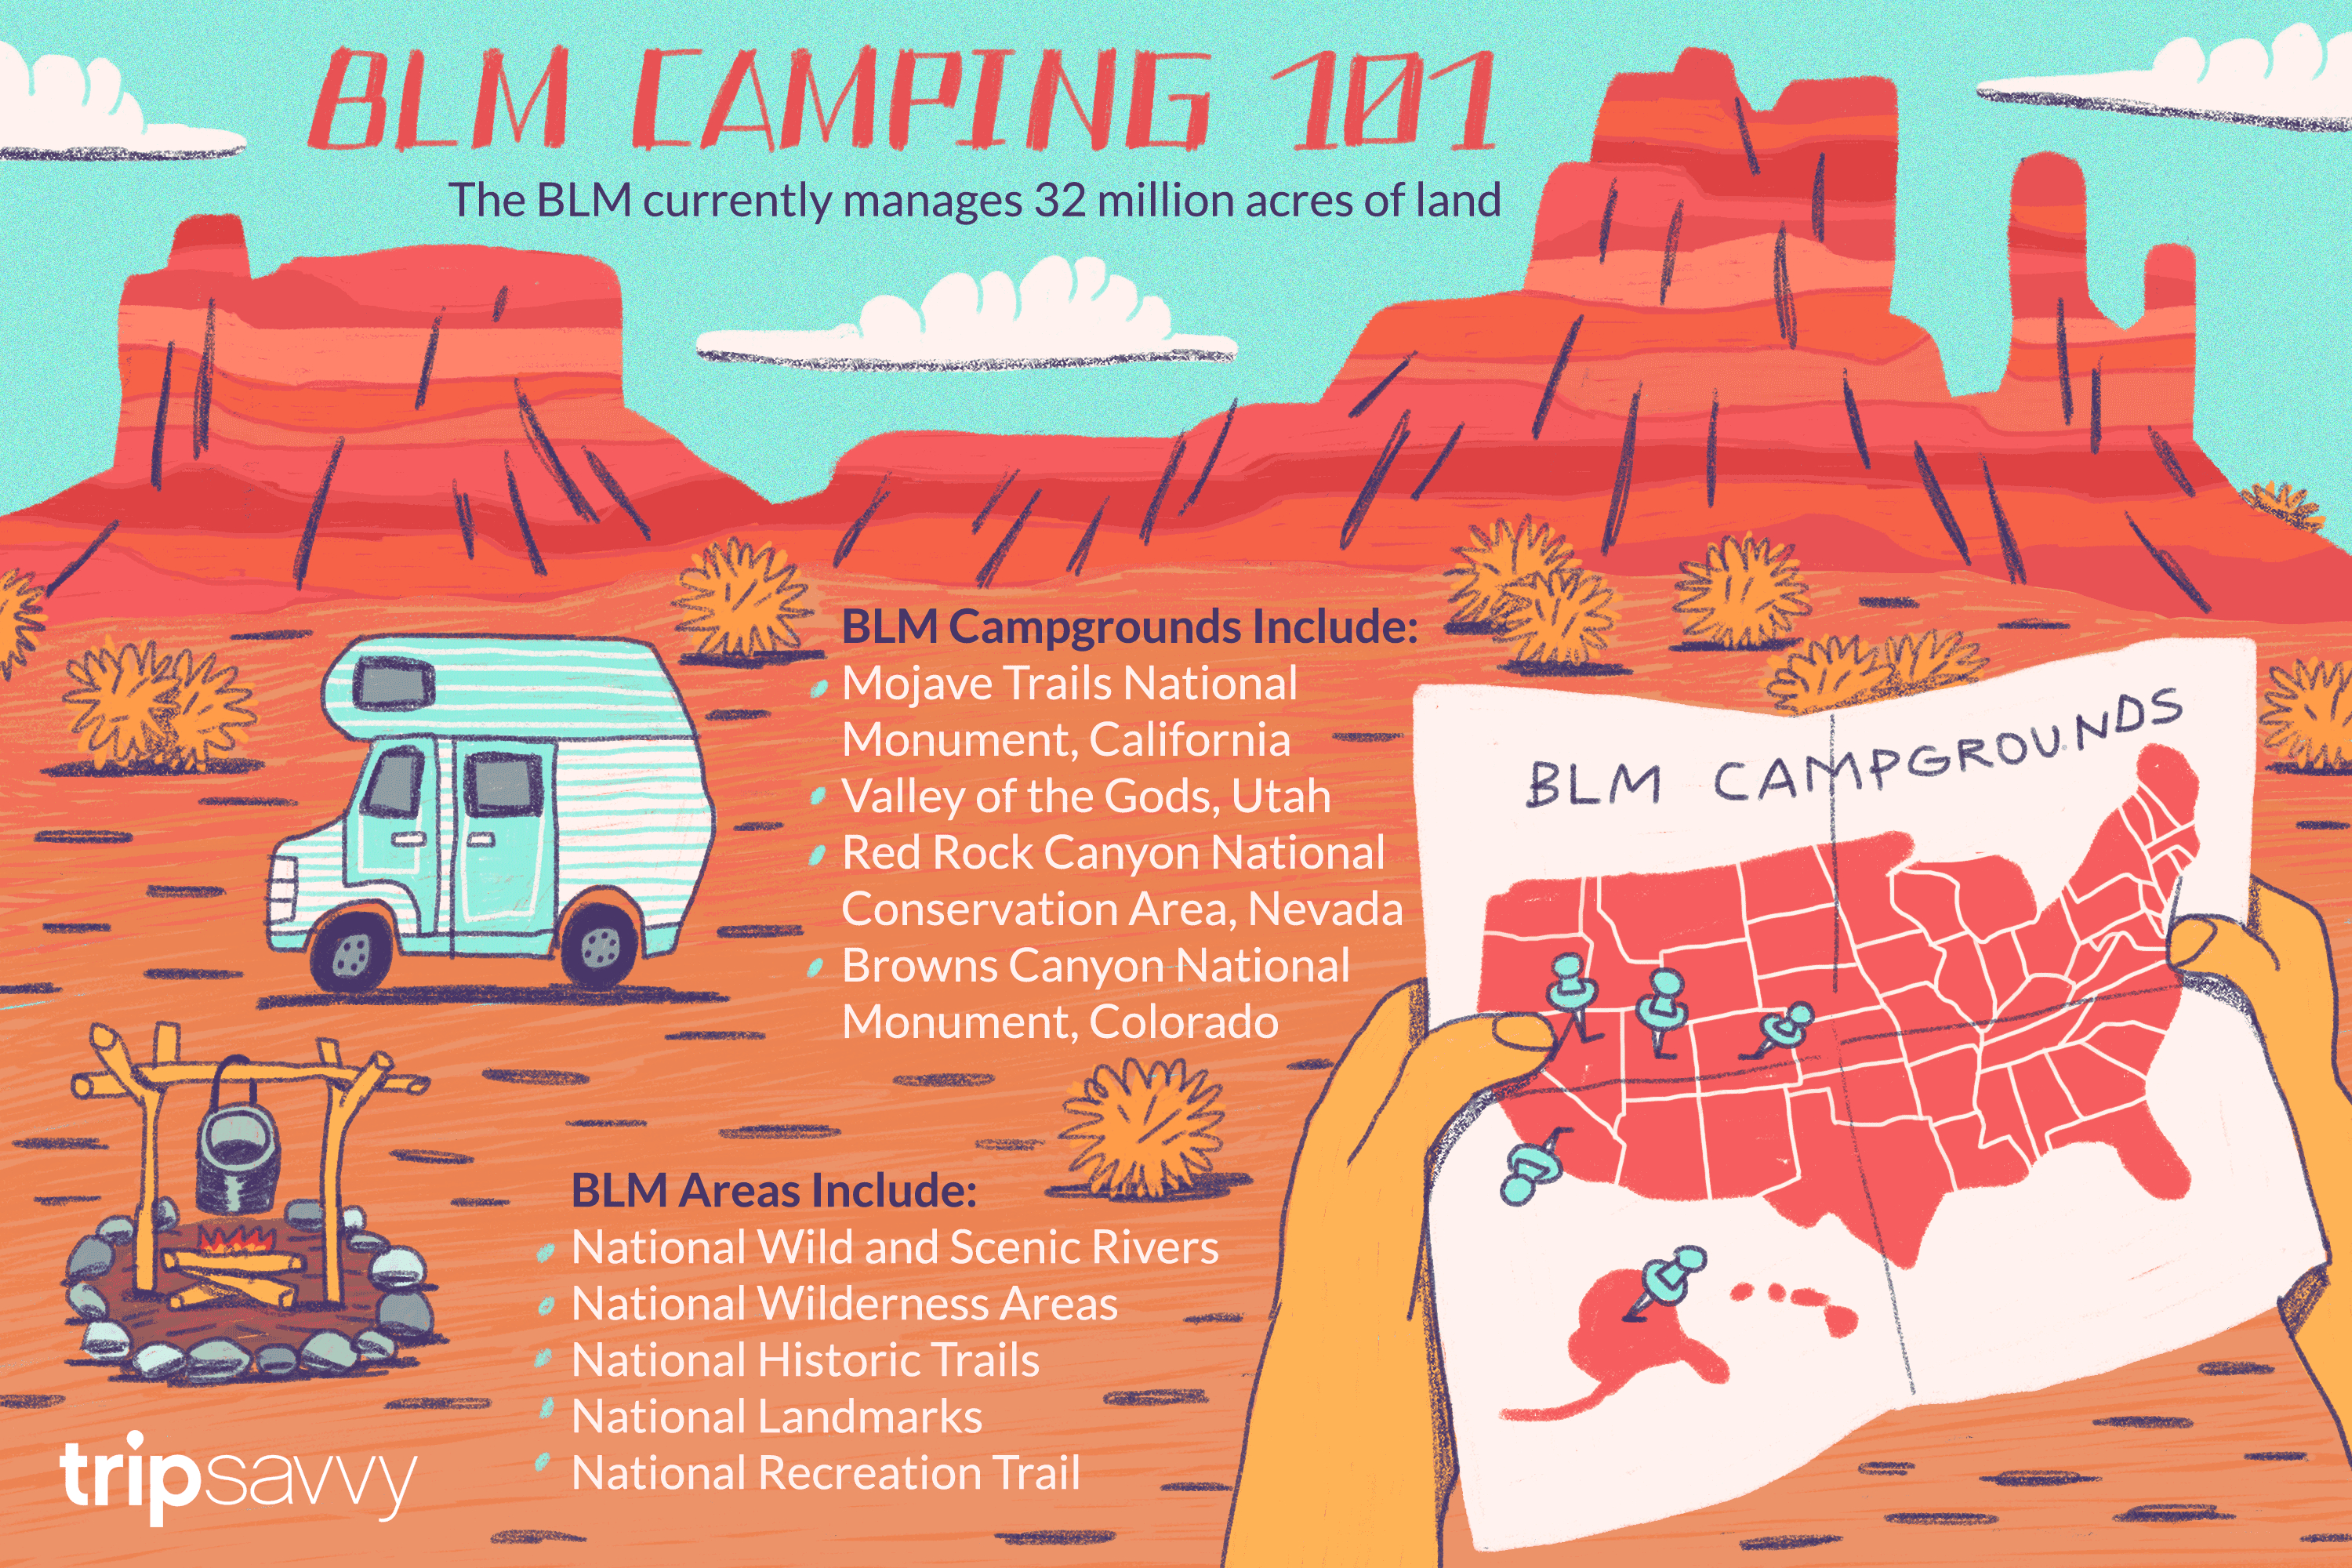 Your Guide To Blm Camping And Recreation - California Blm Camping Map